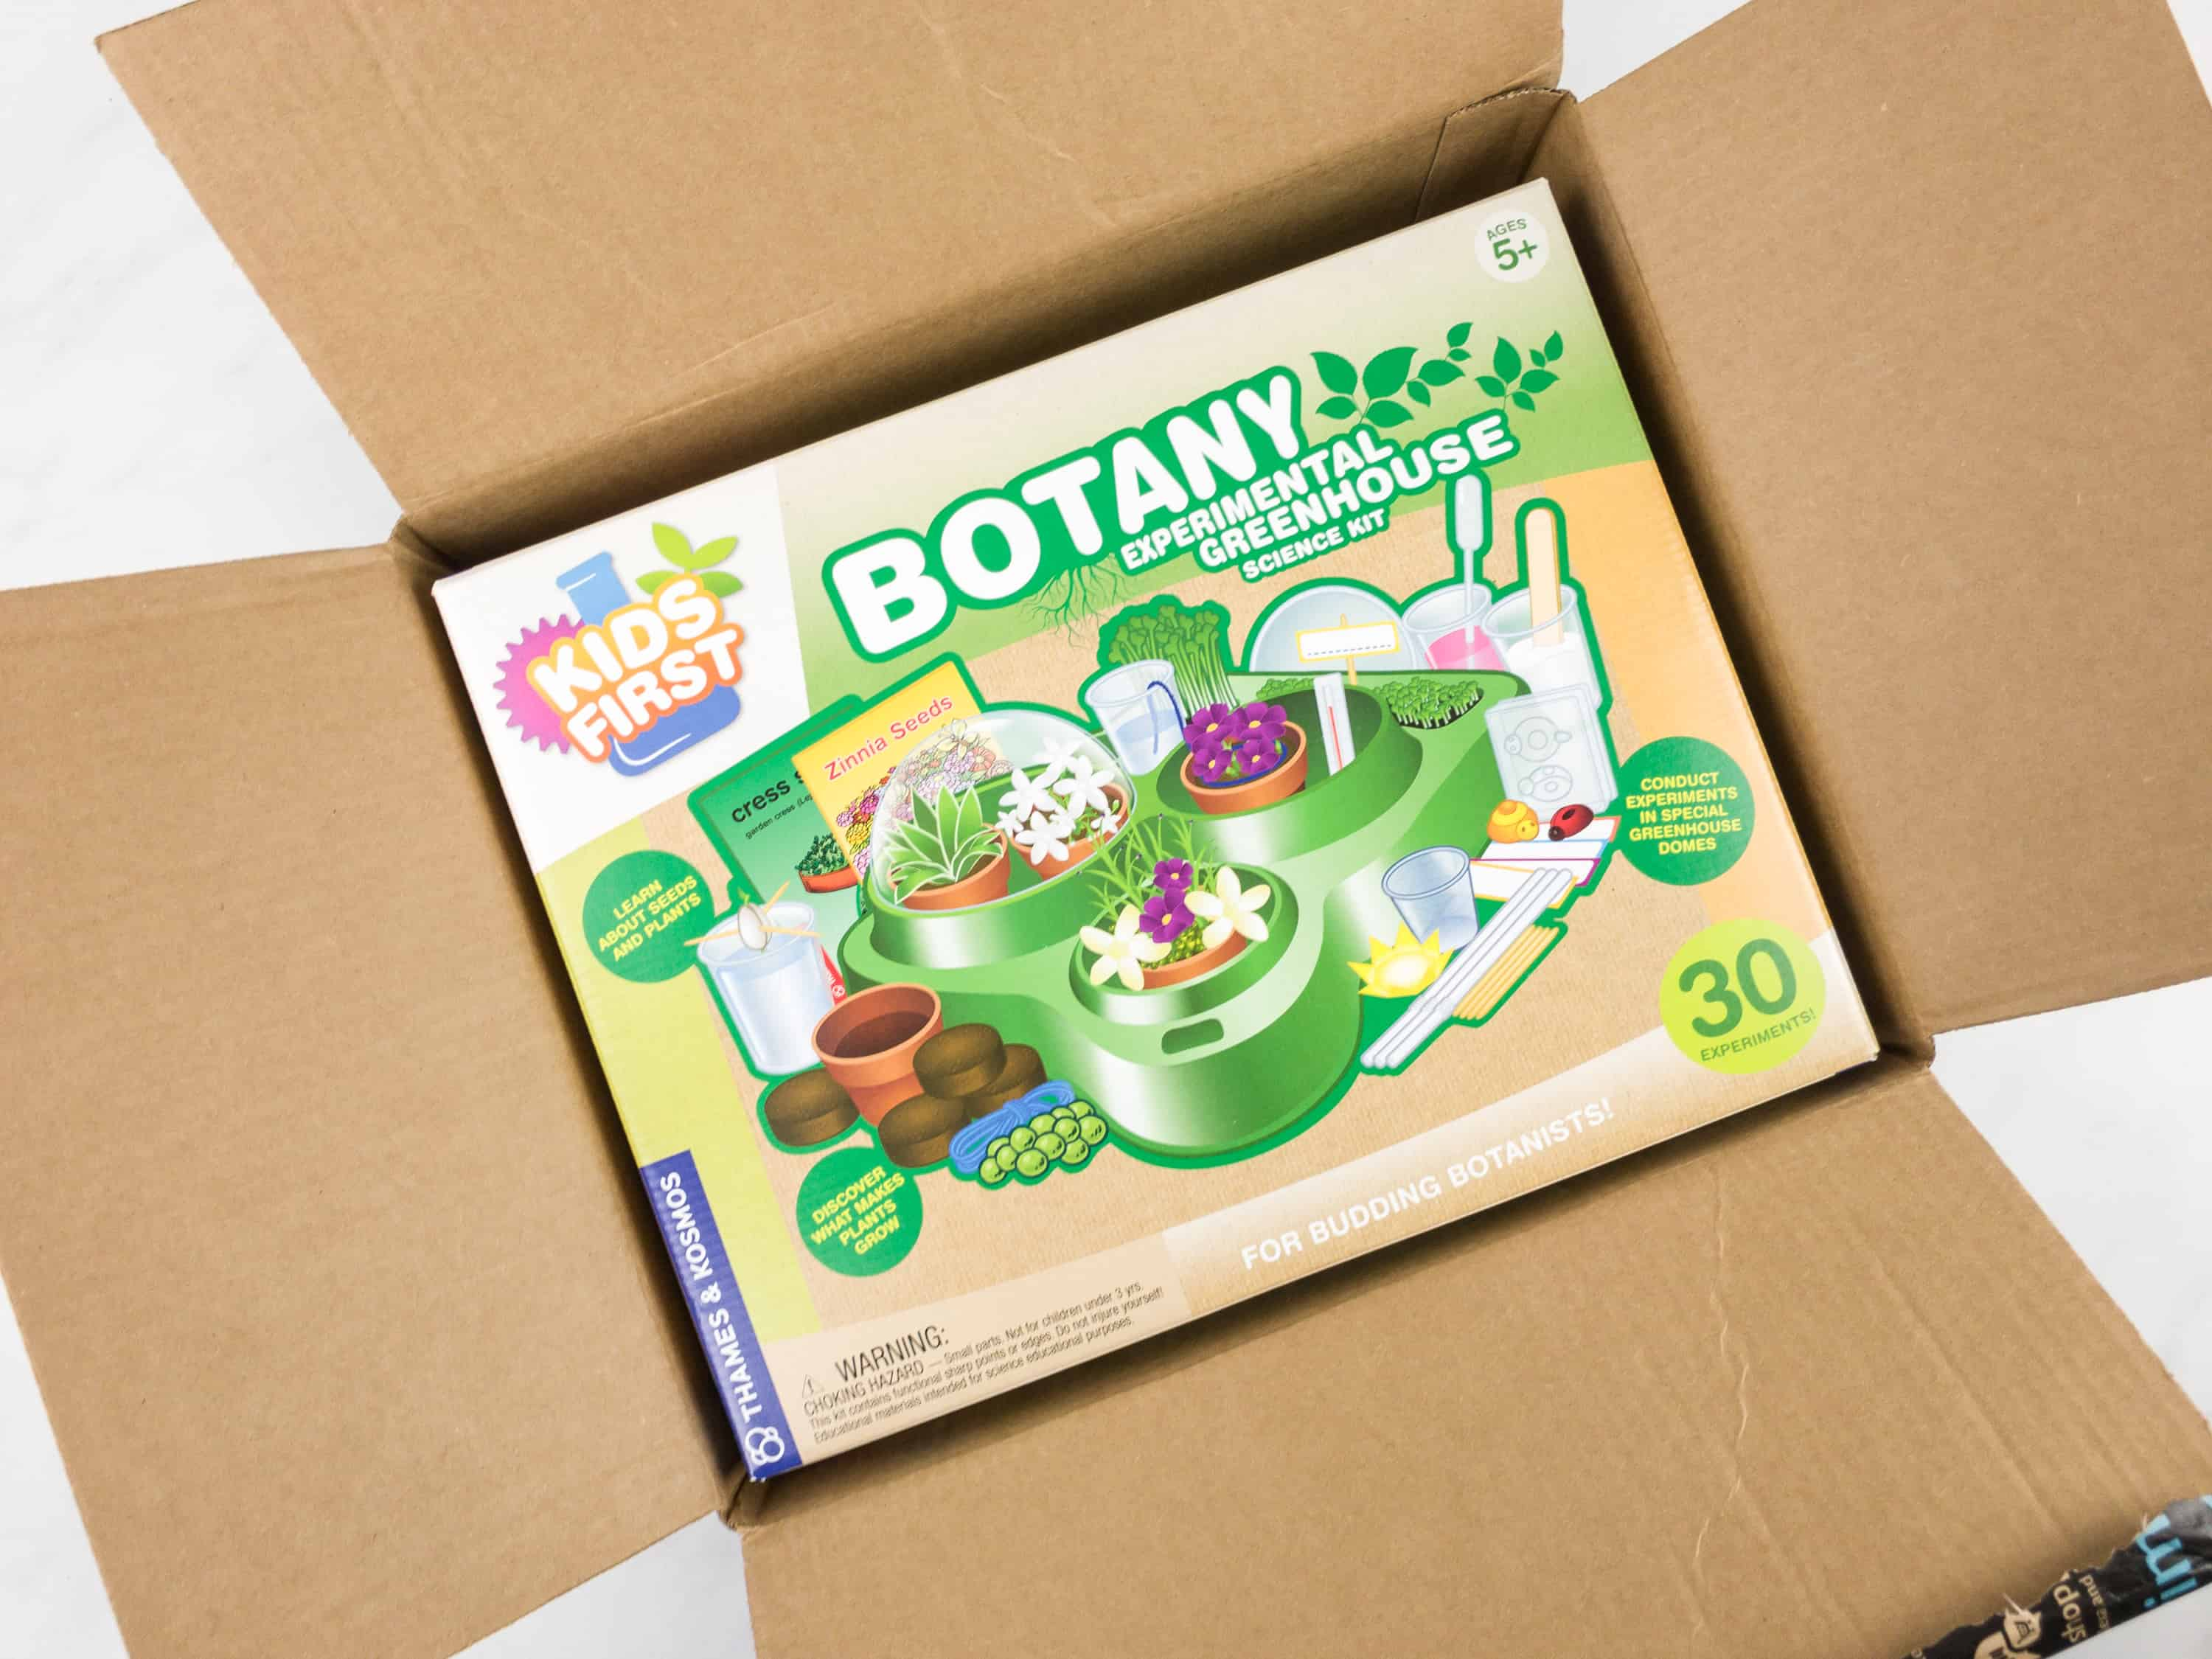 Amazon STEM Toy Club January 2018 Subscription Box Review – 5 to 7 Year Old Box